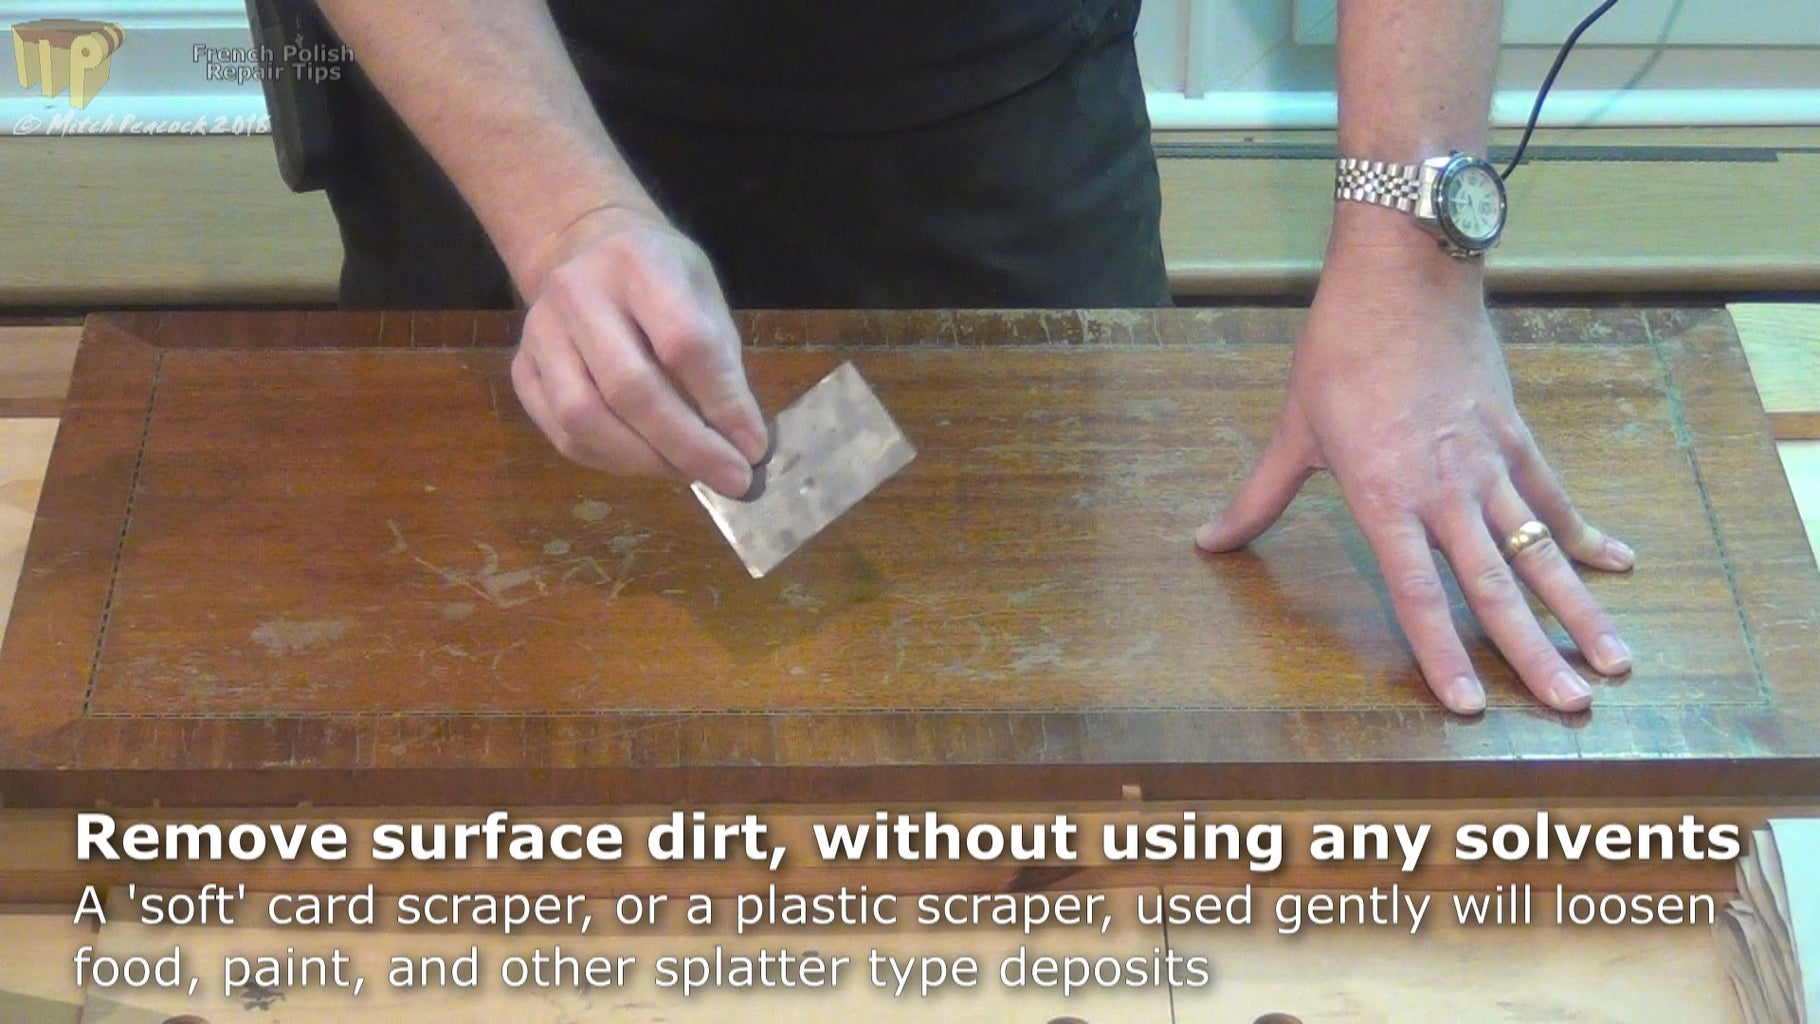 Remove Loose Dirt, Food and Paint Splatters, Etc.